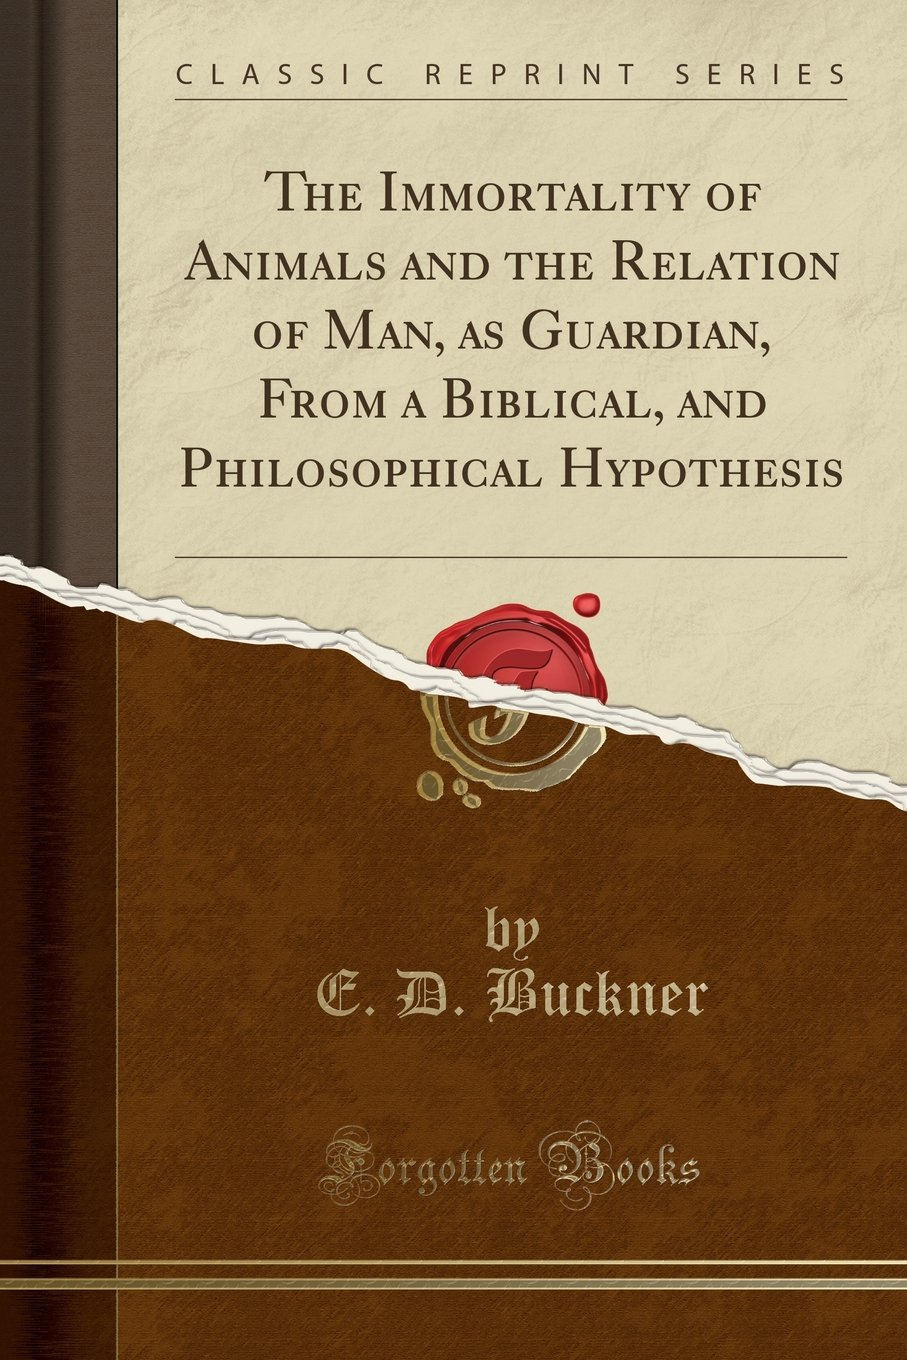 The Immortality of Animals and the Relation of Man, as Guardian, From a Biblical, and Philosophical Hypothesis (Classic Reprint) PDF